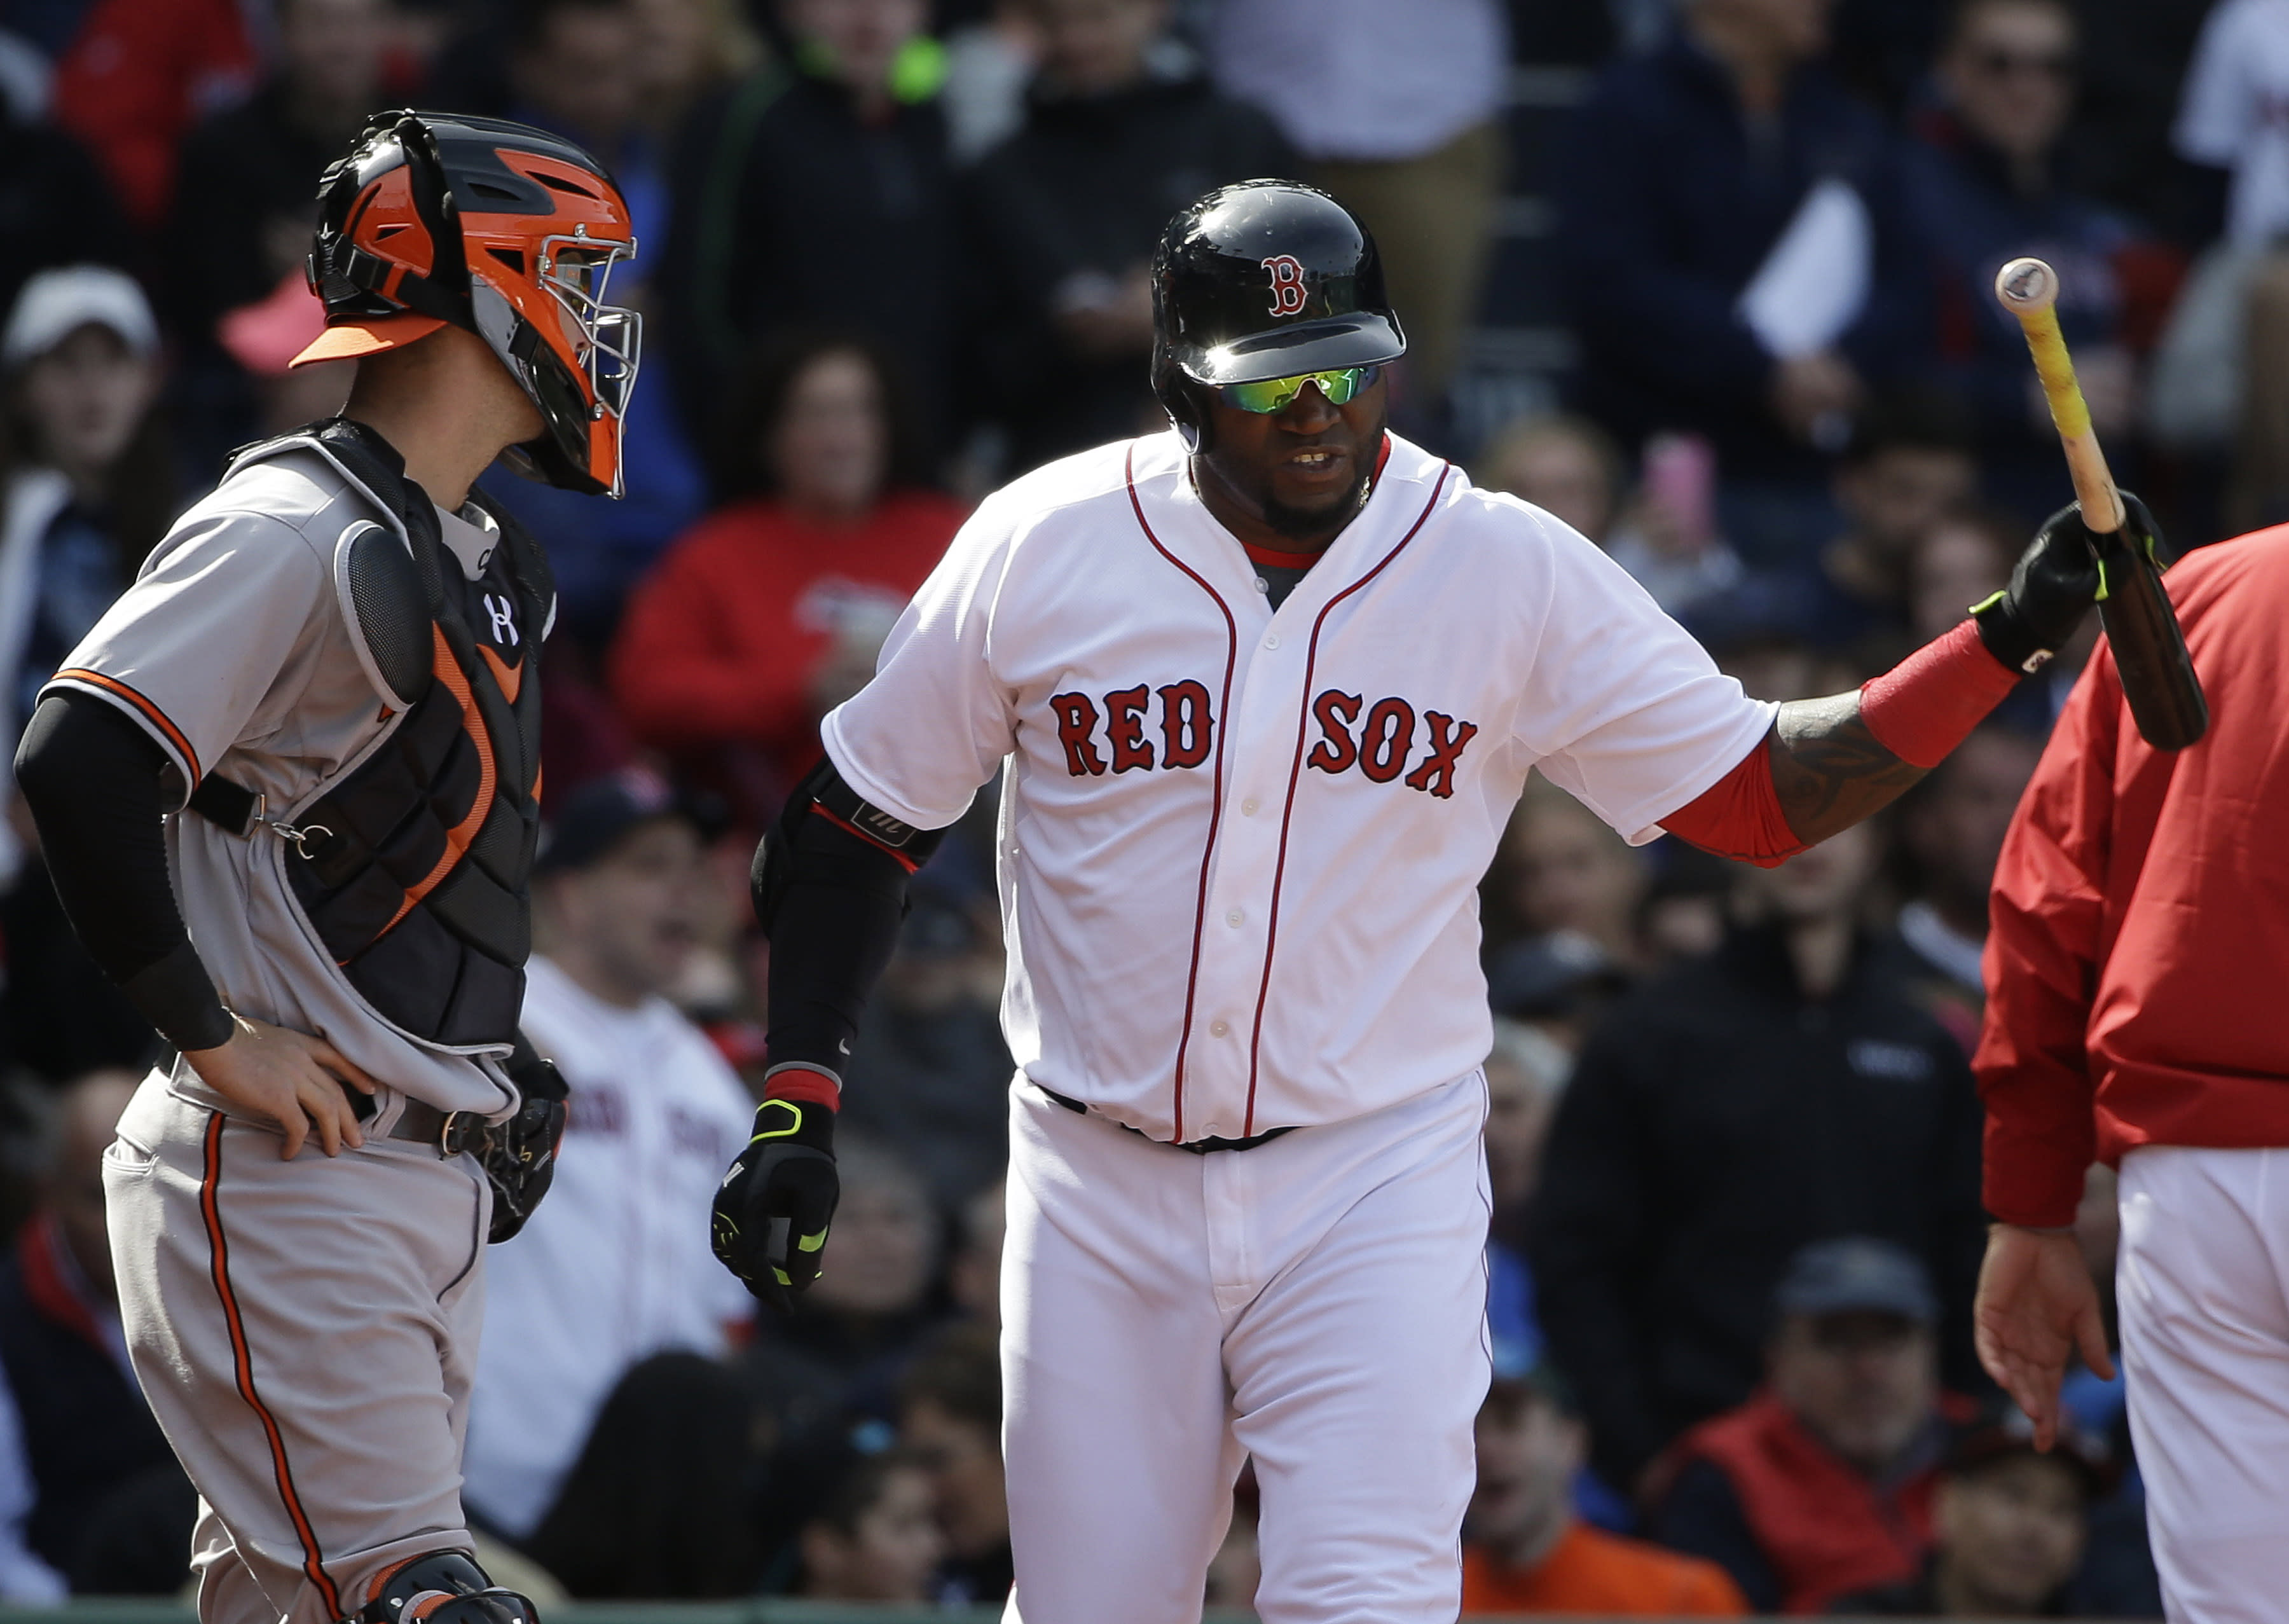 Ortiz suspended 1 game by MLB for making contact with umpire